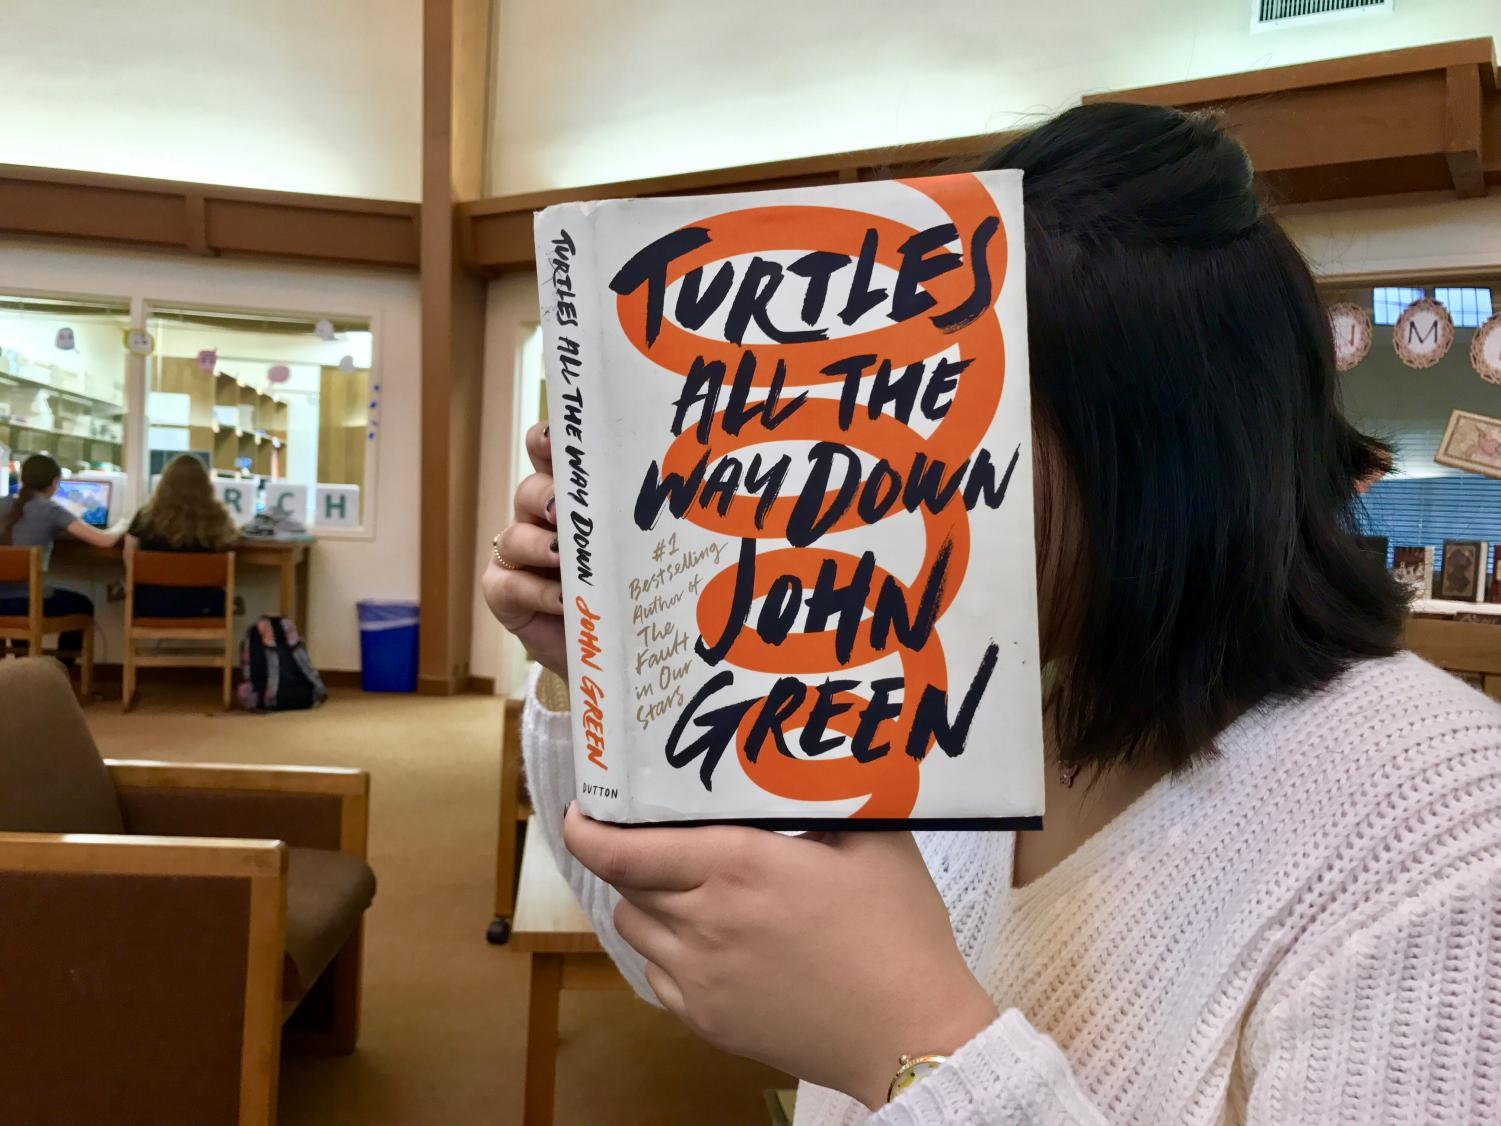 John Green's Turtles All the Way Down is a must-read and fills the readers with philosophical questions and answers.